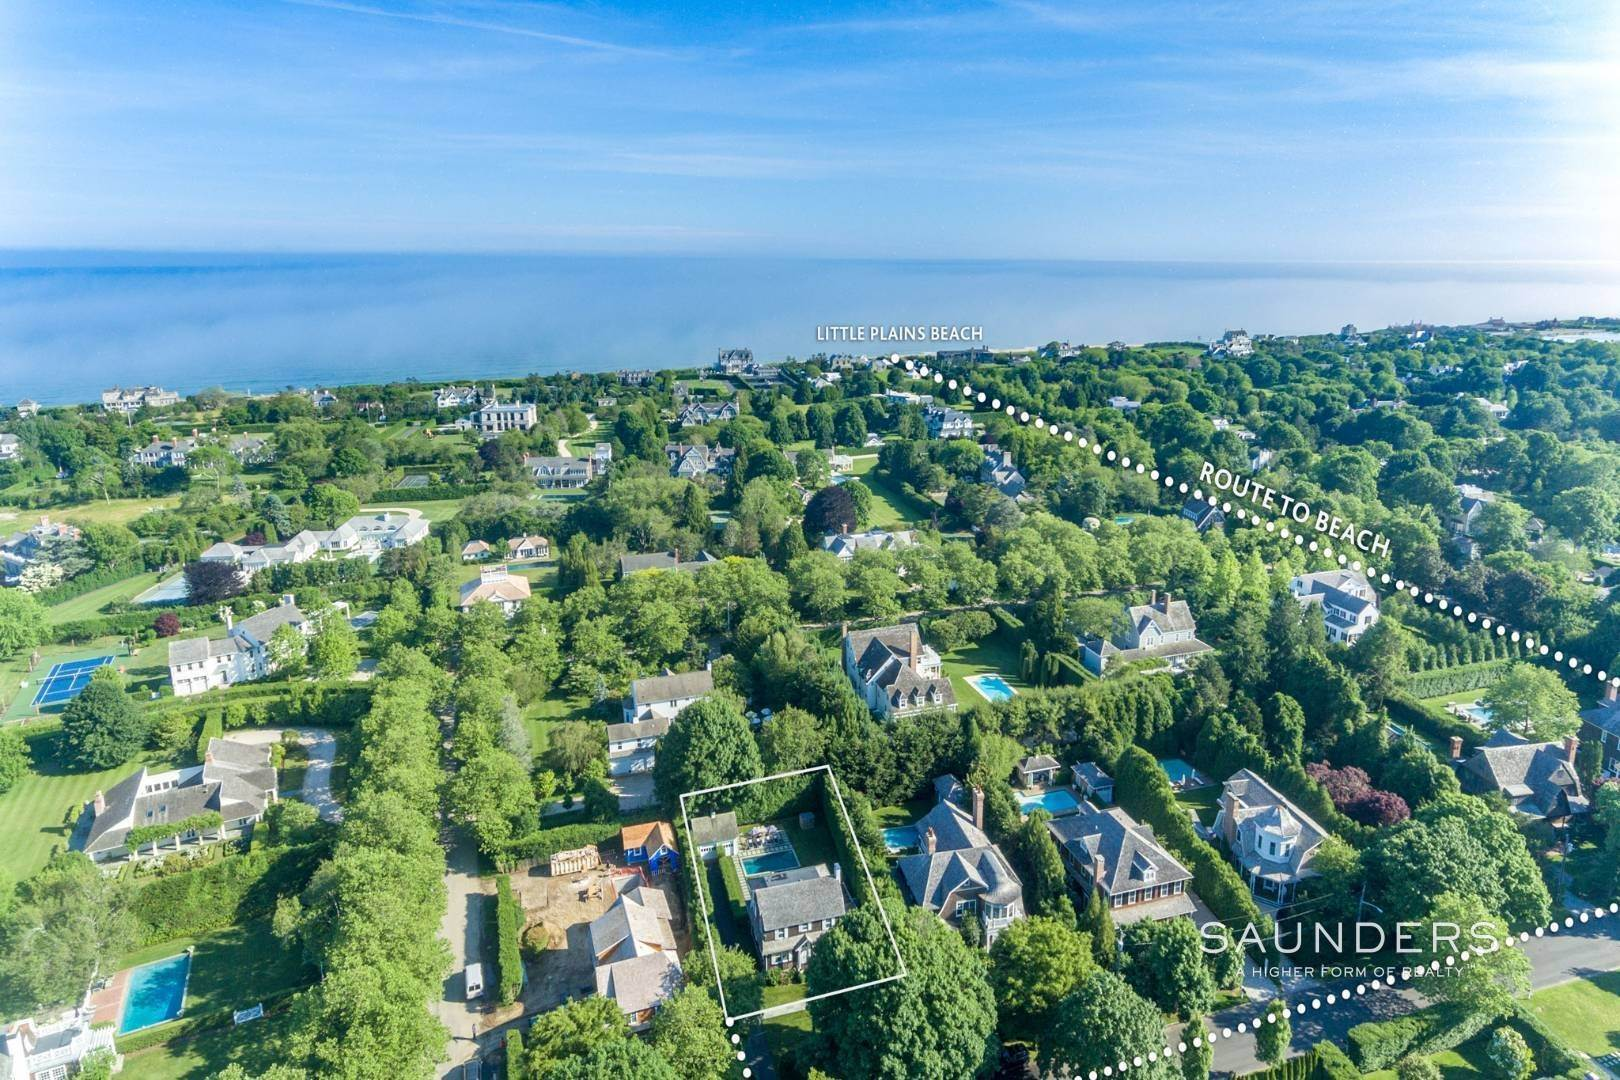 Single Family Homes for Sale at Southampton Village South Near Ocean 66 Huntting Street, Southampton, Southampton Town, NY 11968